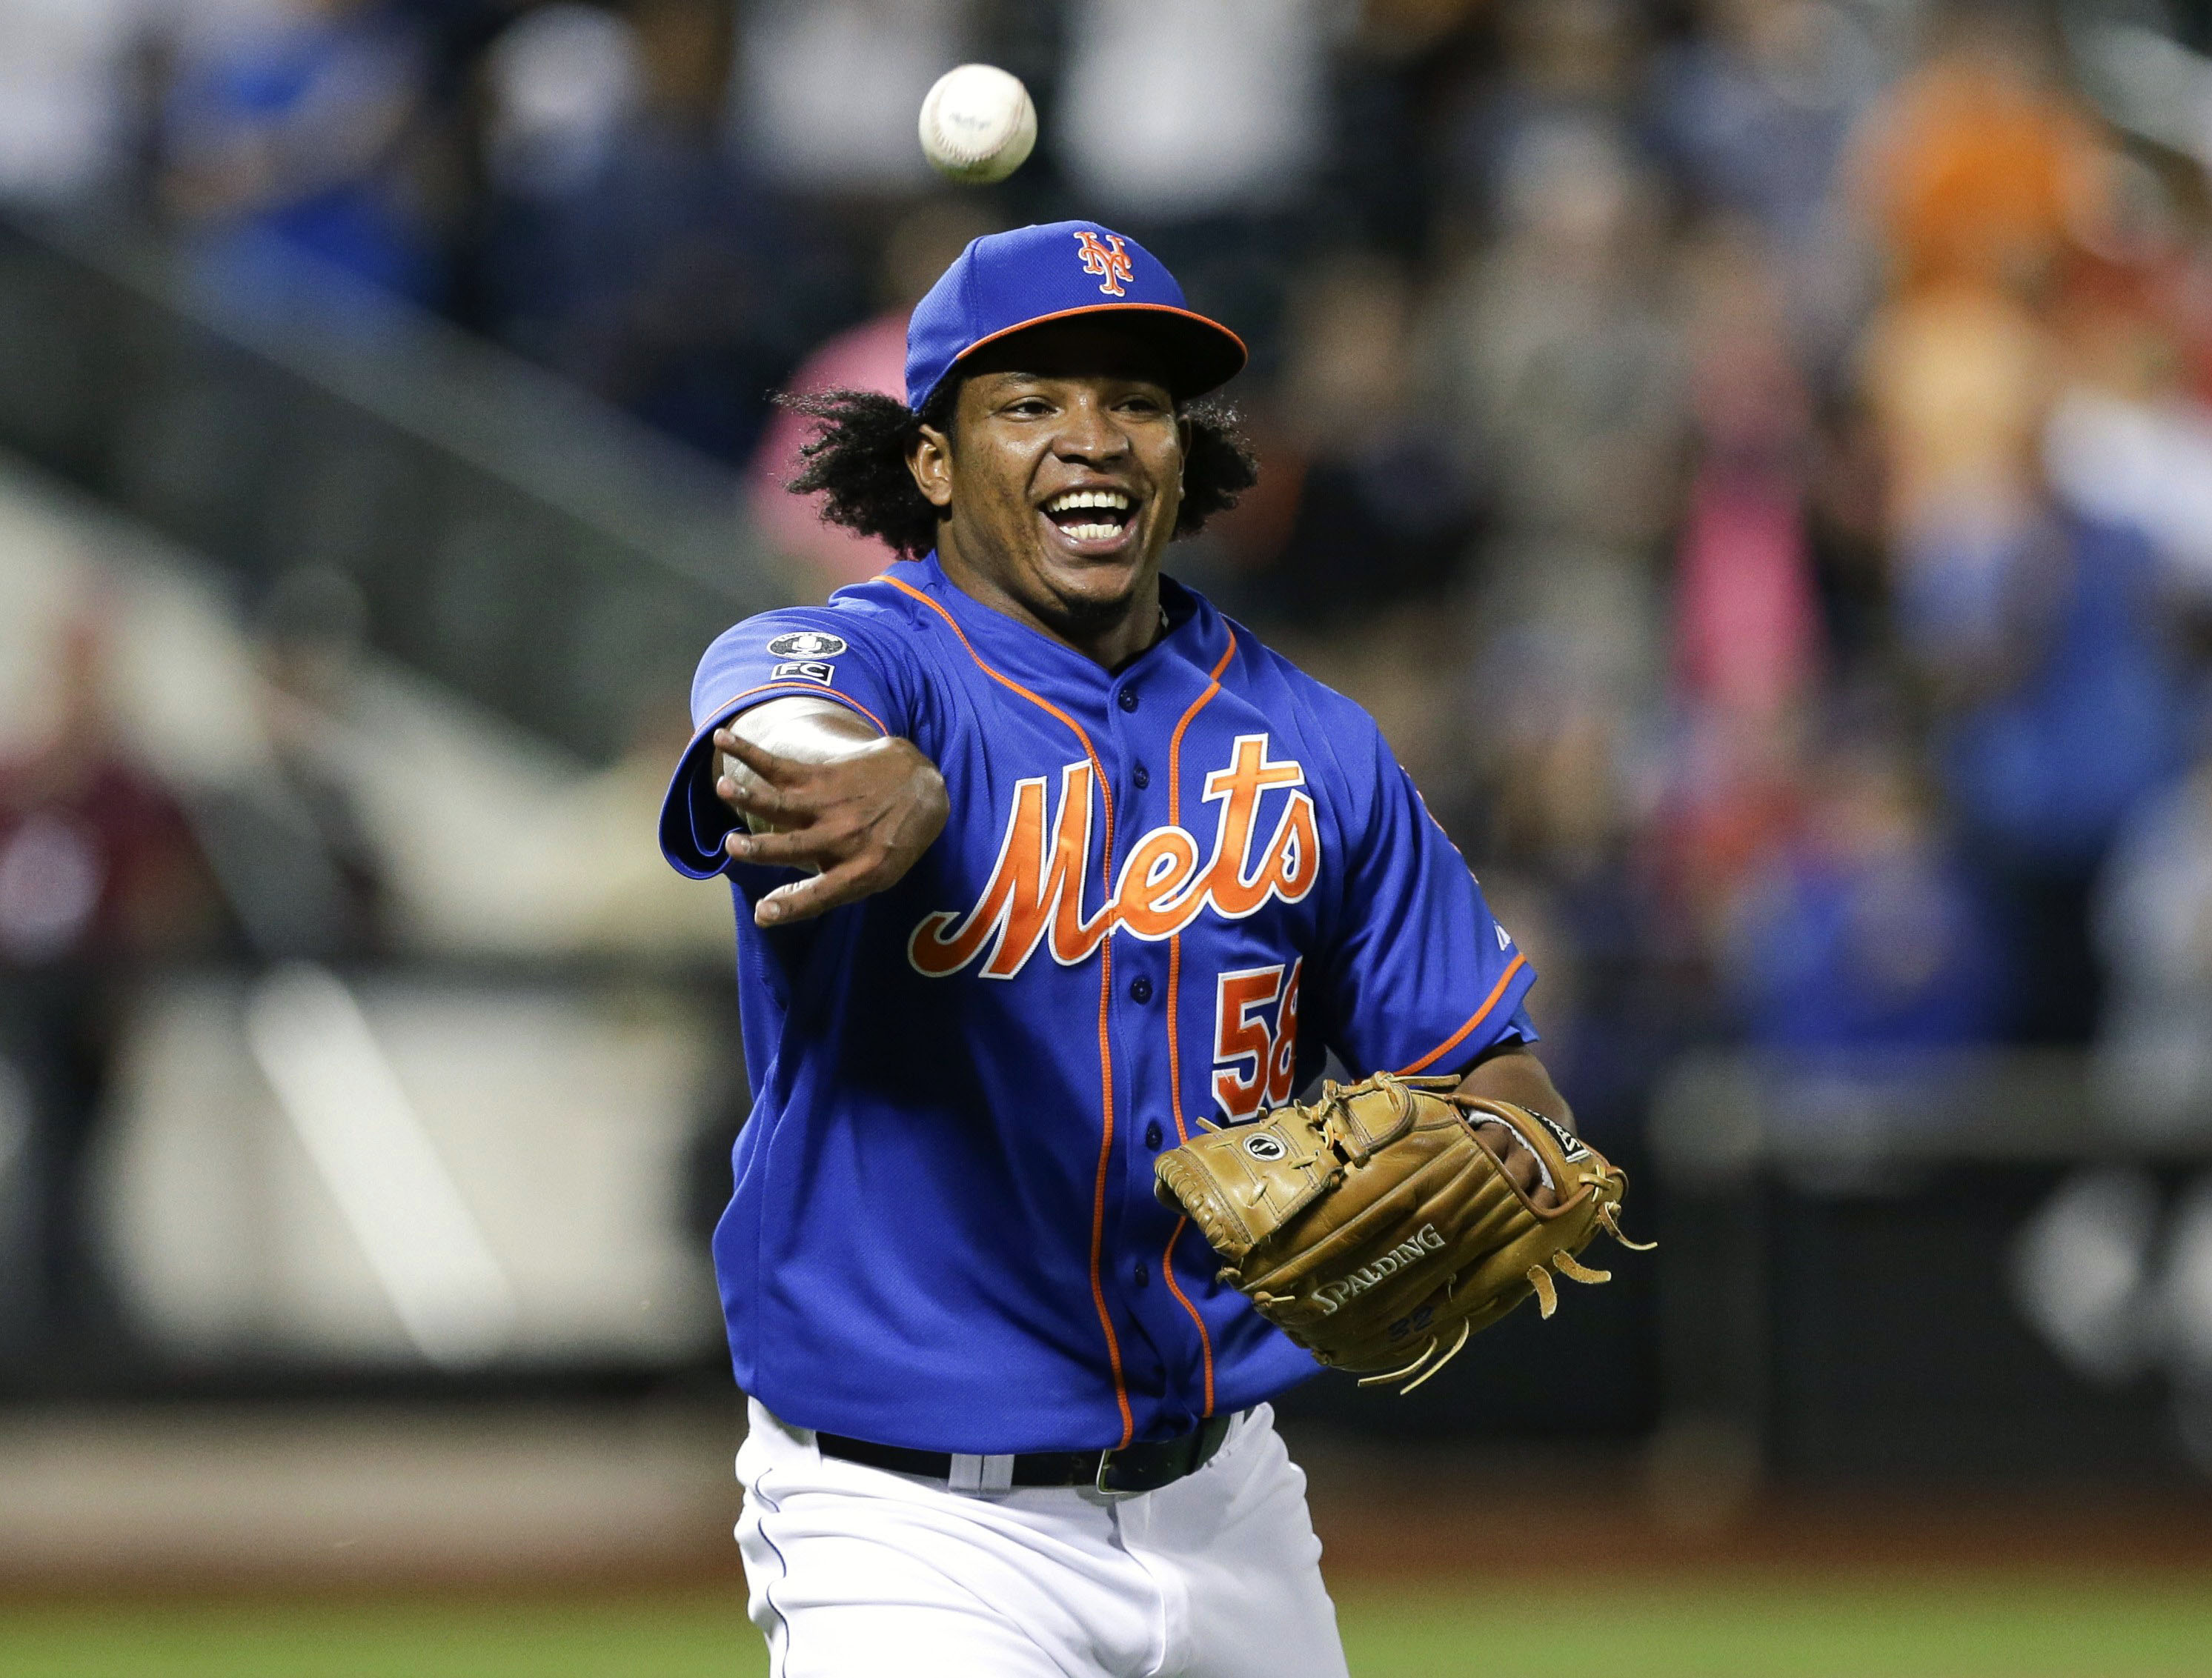 FILE - In this Wednesday, Sept. 10, 2014 file photo, New York Mets relief pitcher Jenrry Mejia tosses the ball to throw out Colorado Rockies' Josh Rutledge at first base to end a baseball game, in New York. Just back from an 80-game drug suspension, New Y